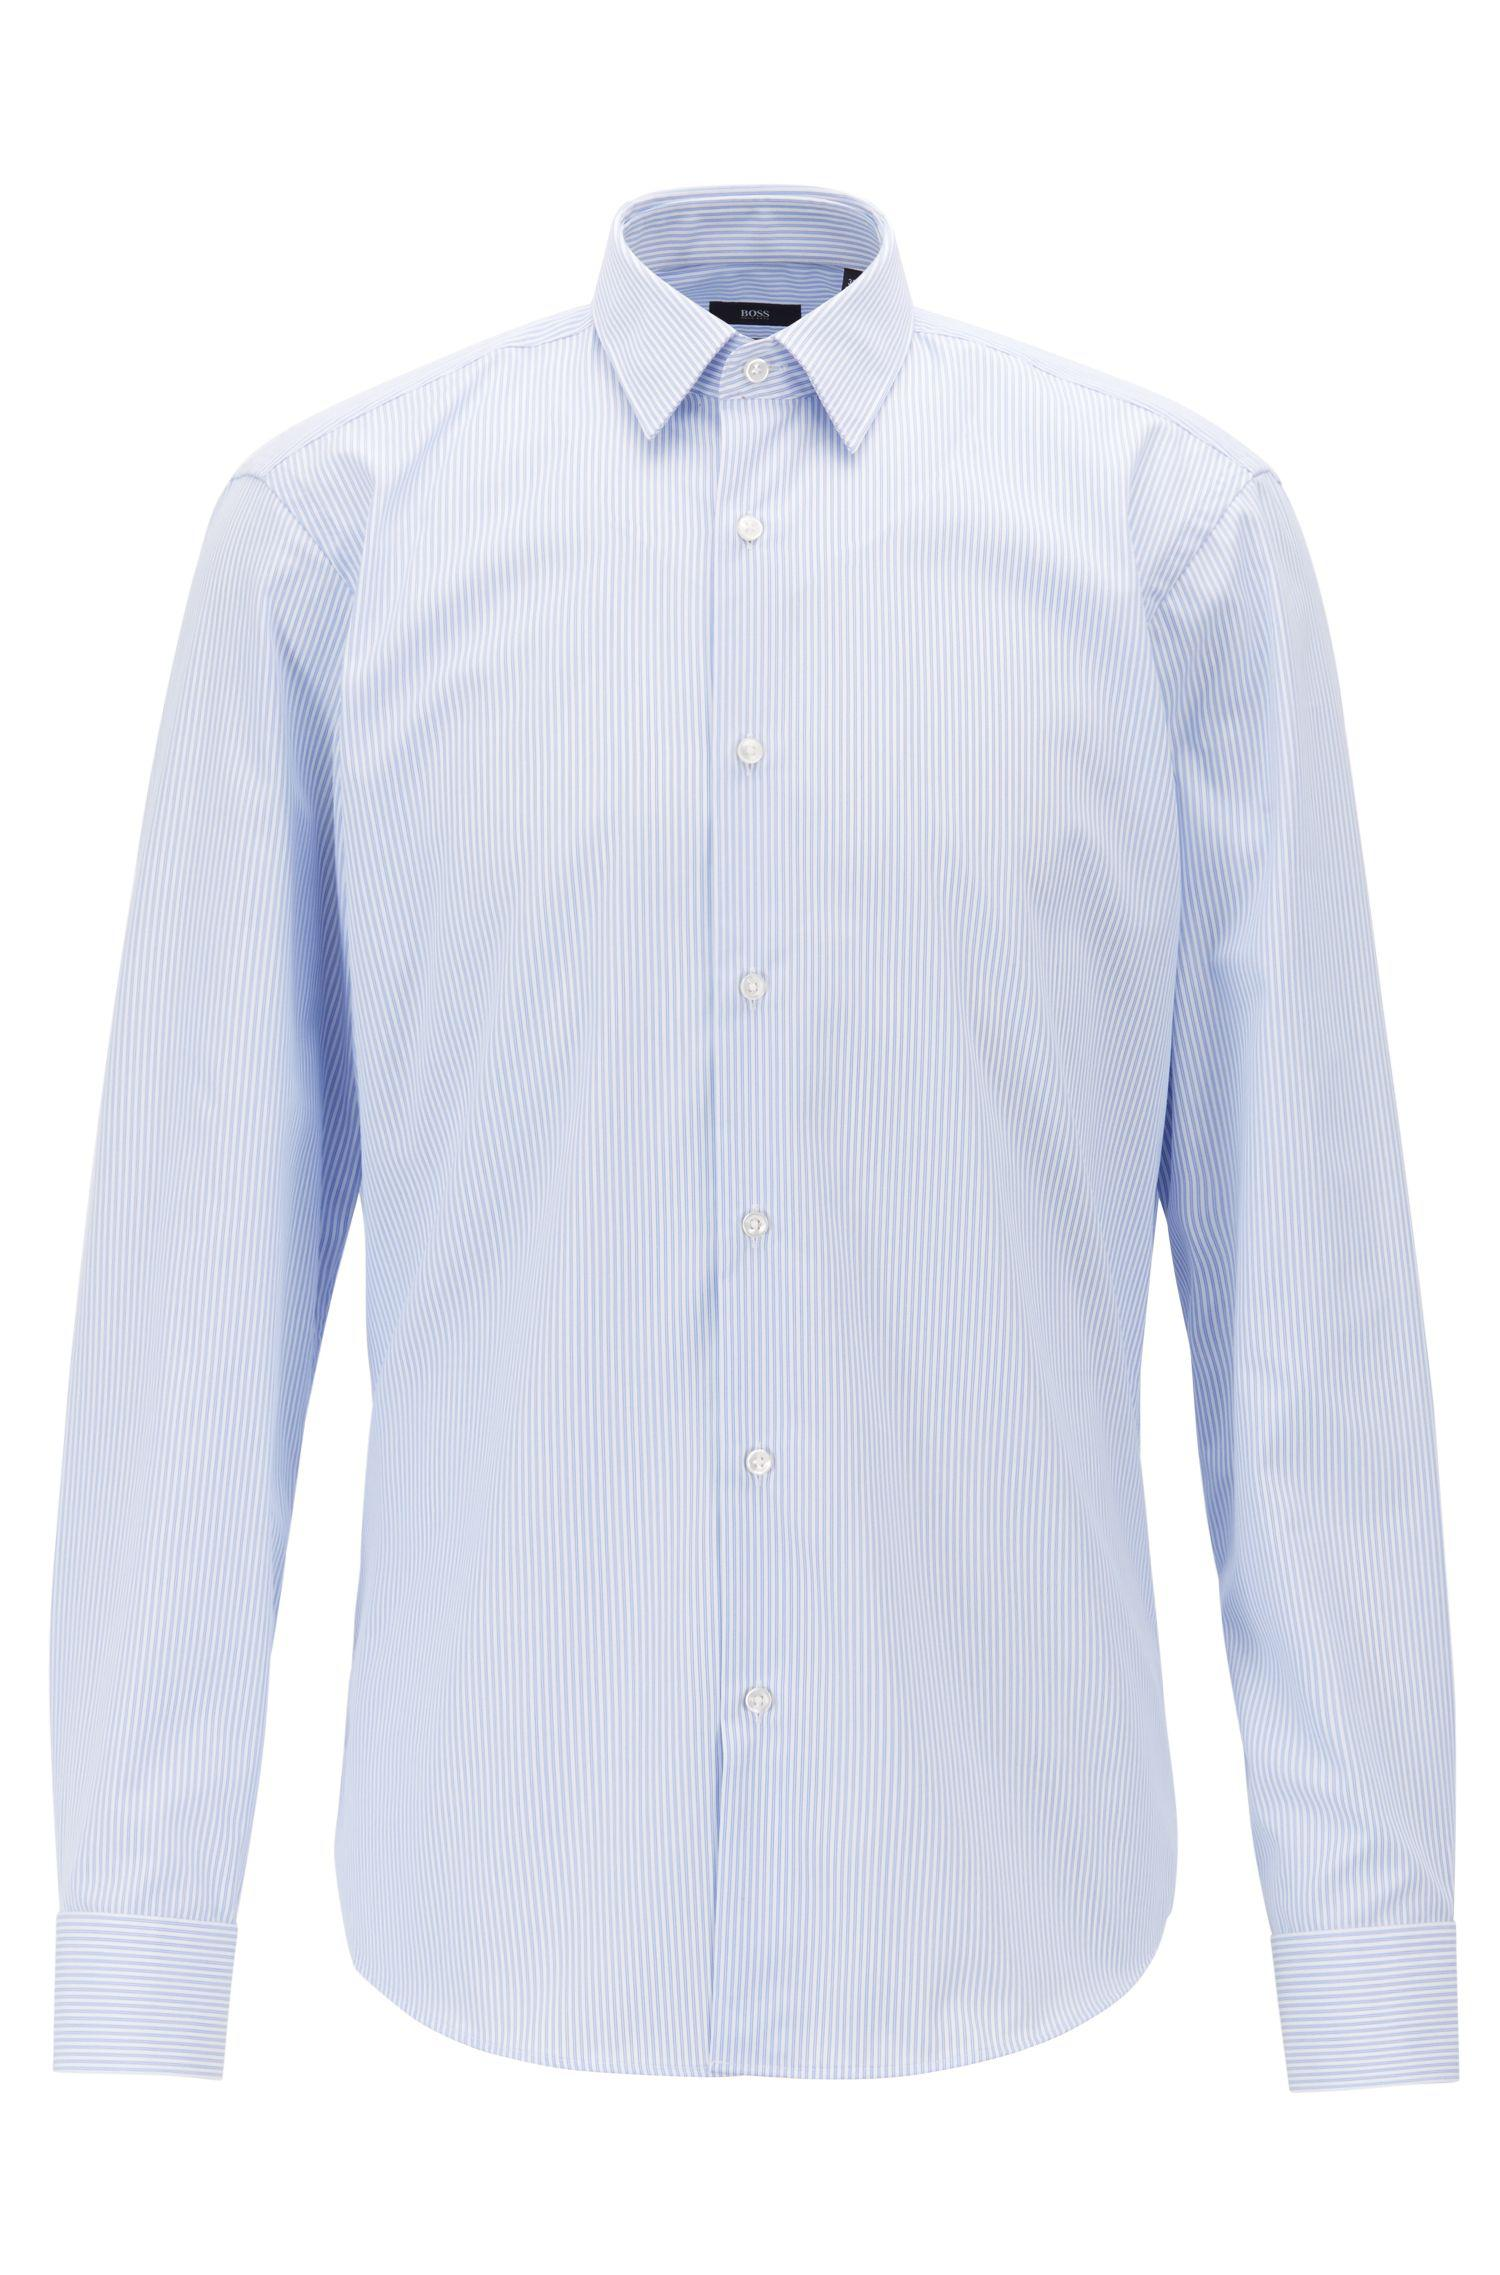 Easy Iron 25 Mg: BOSS Regular-fit Easy-iron Shirt In Striped Cotton Poplin